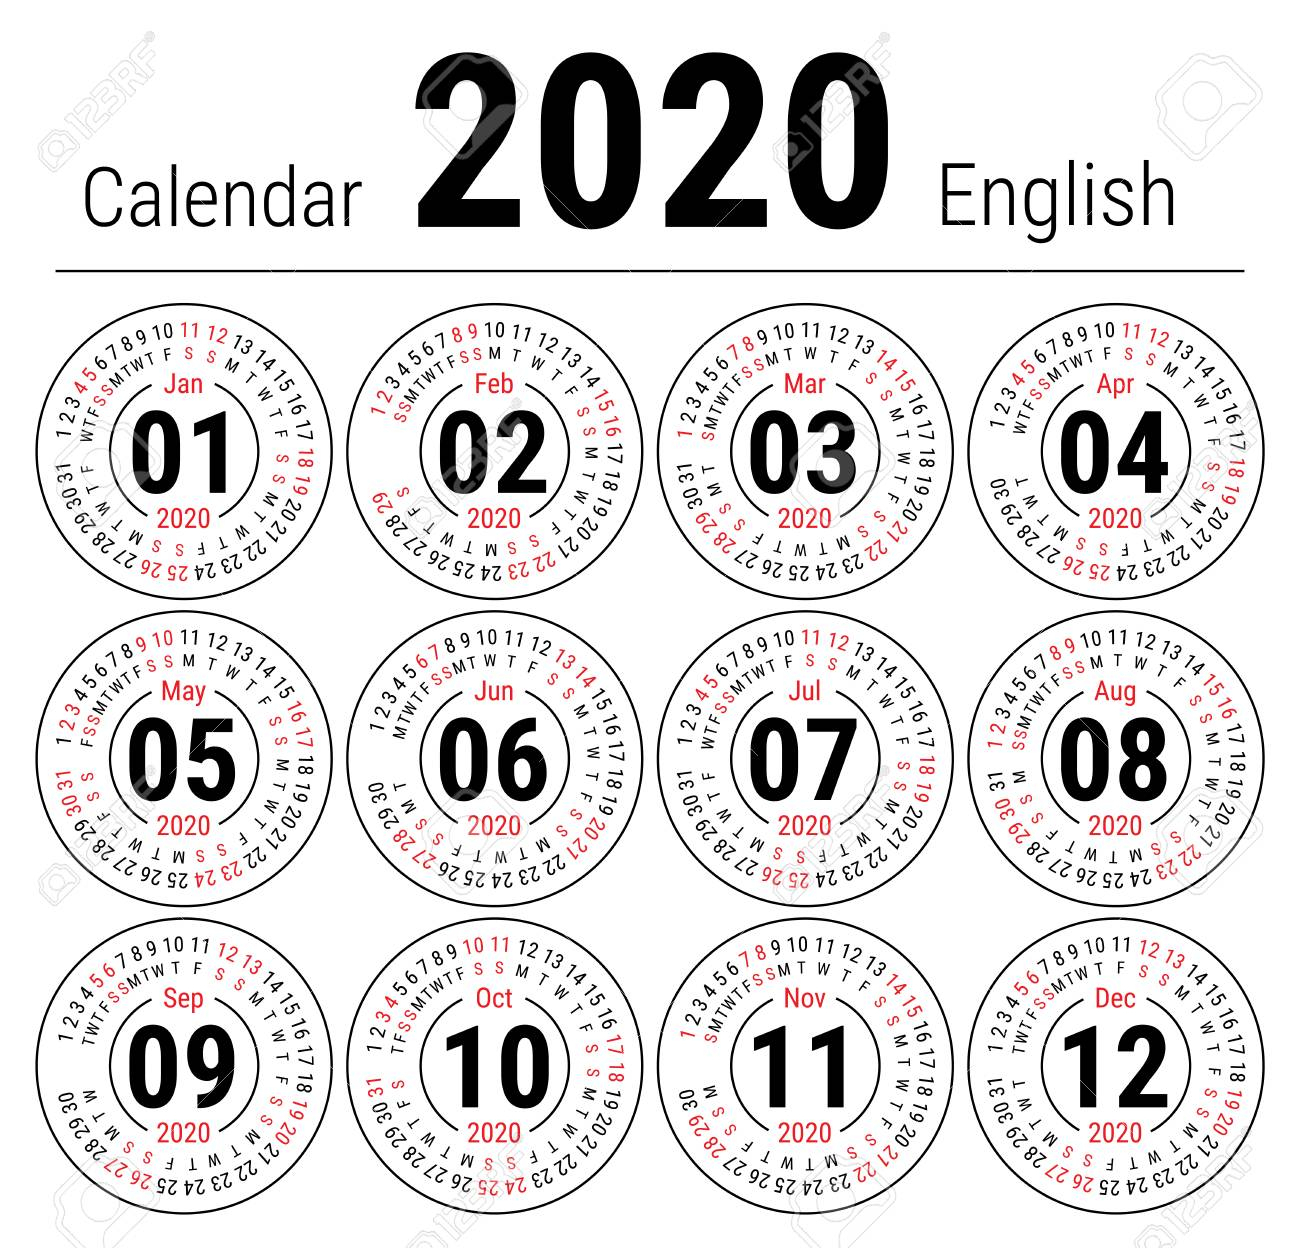 Calendar 2020. Vector English Round Calender. January, February,..